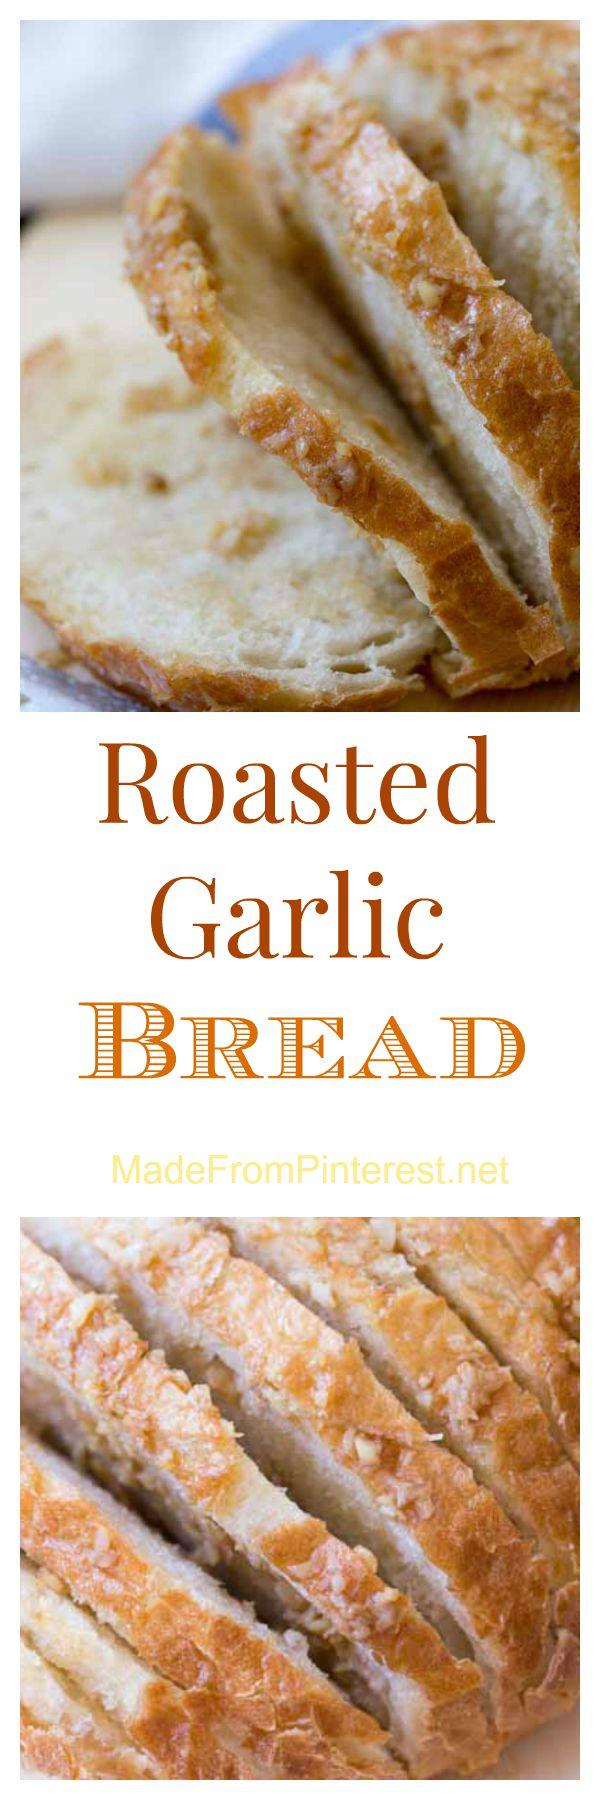 Roasted Garlic Bread - Made From Pinterest